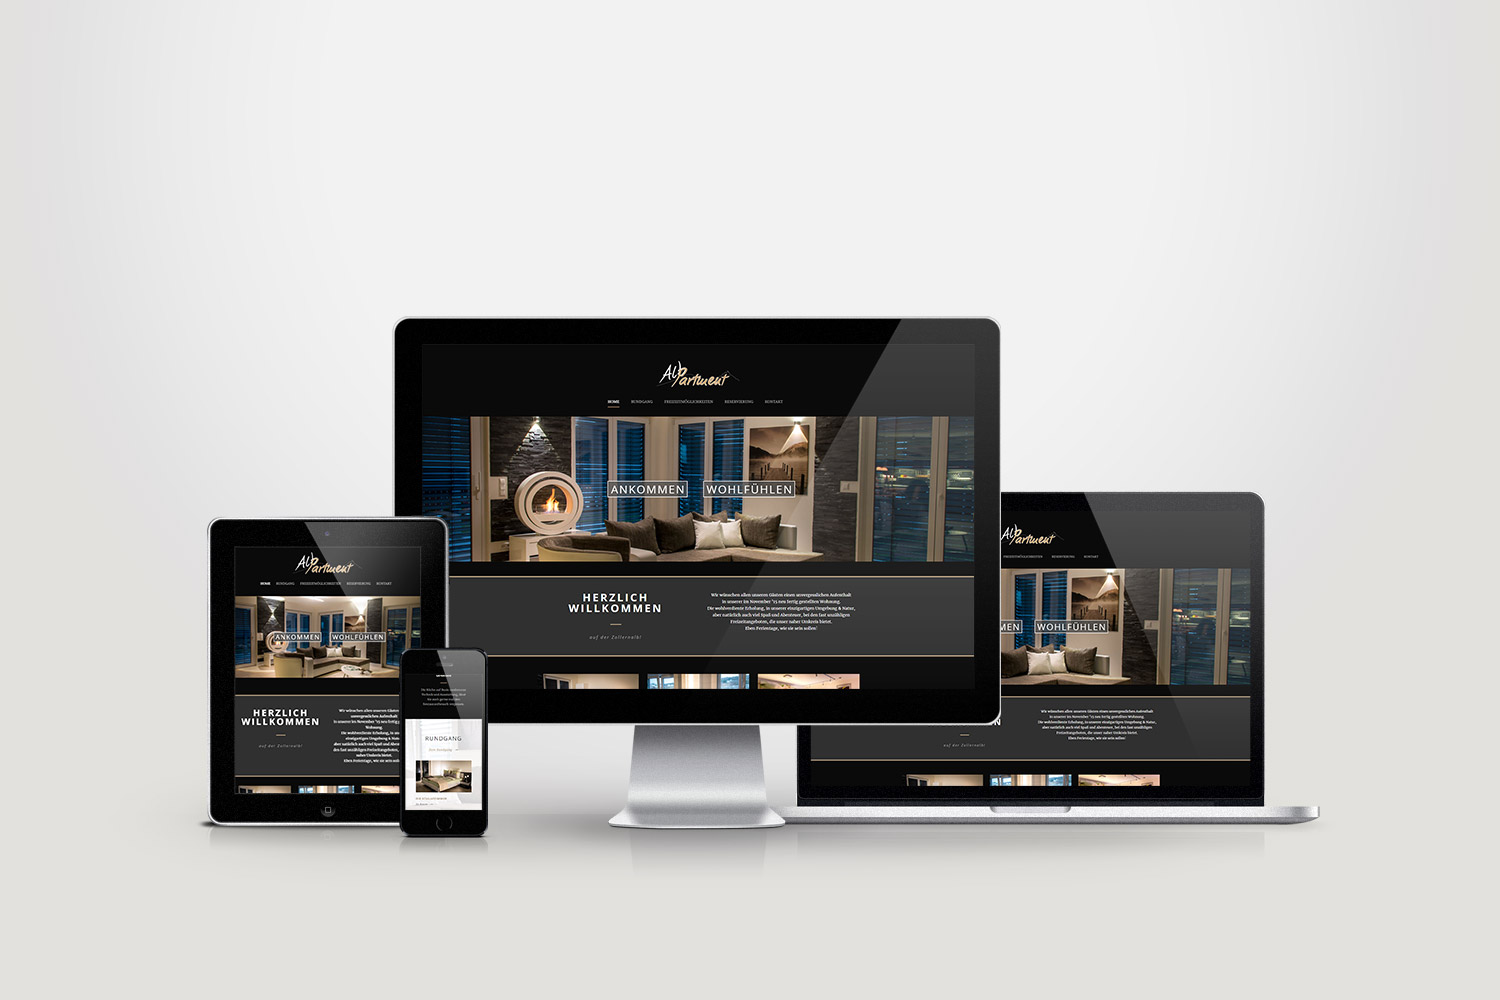 AlbPartment - Responsive Webdesign